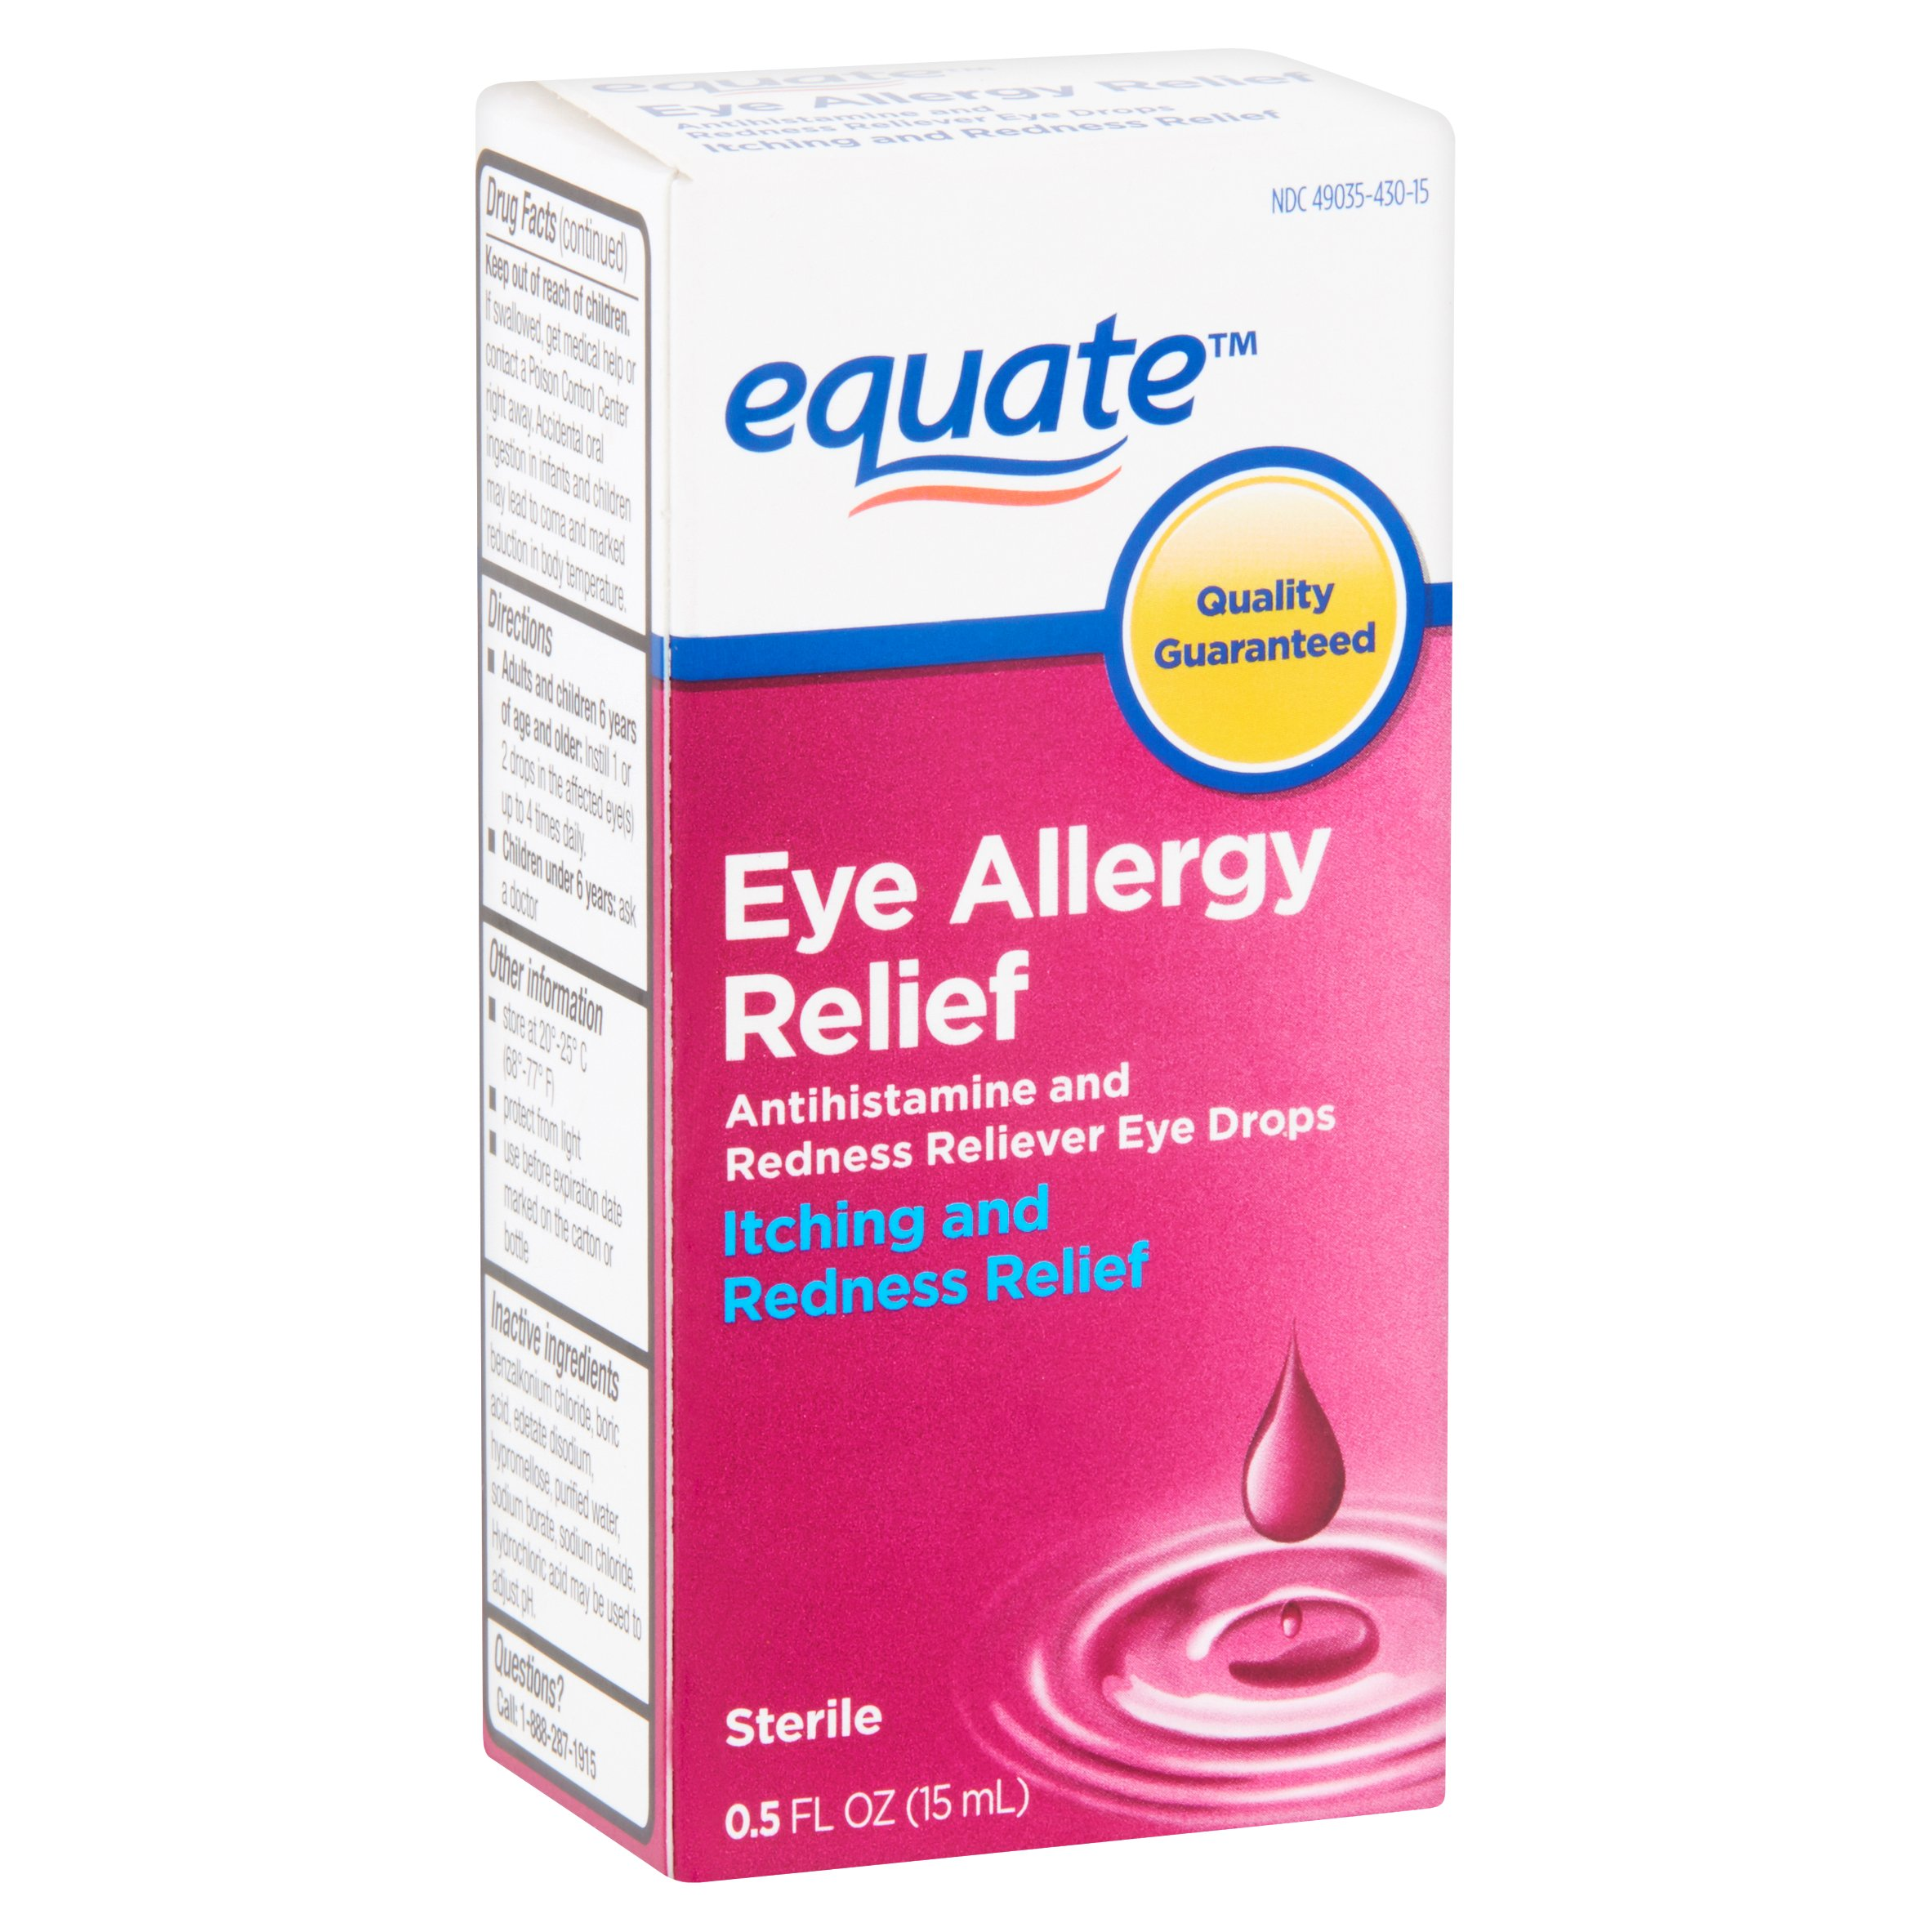 Eye drops for allergies: reviews. What eye drops are better for allergies? 27